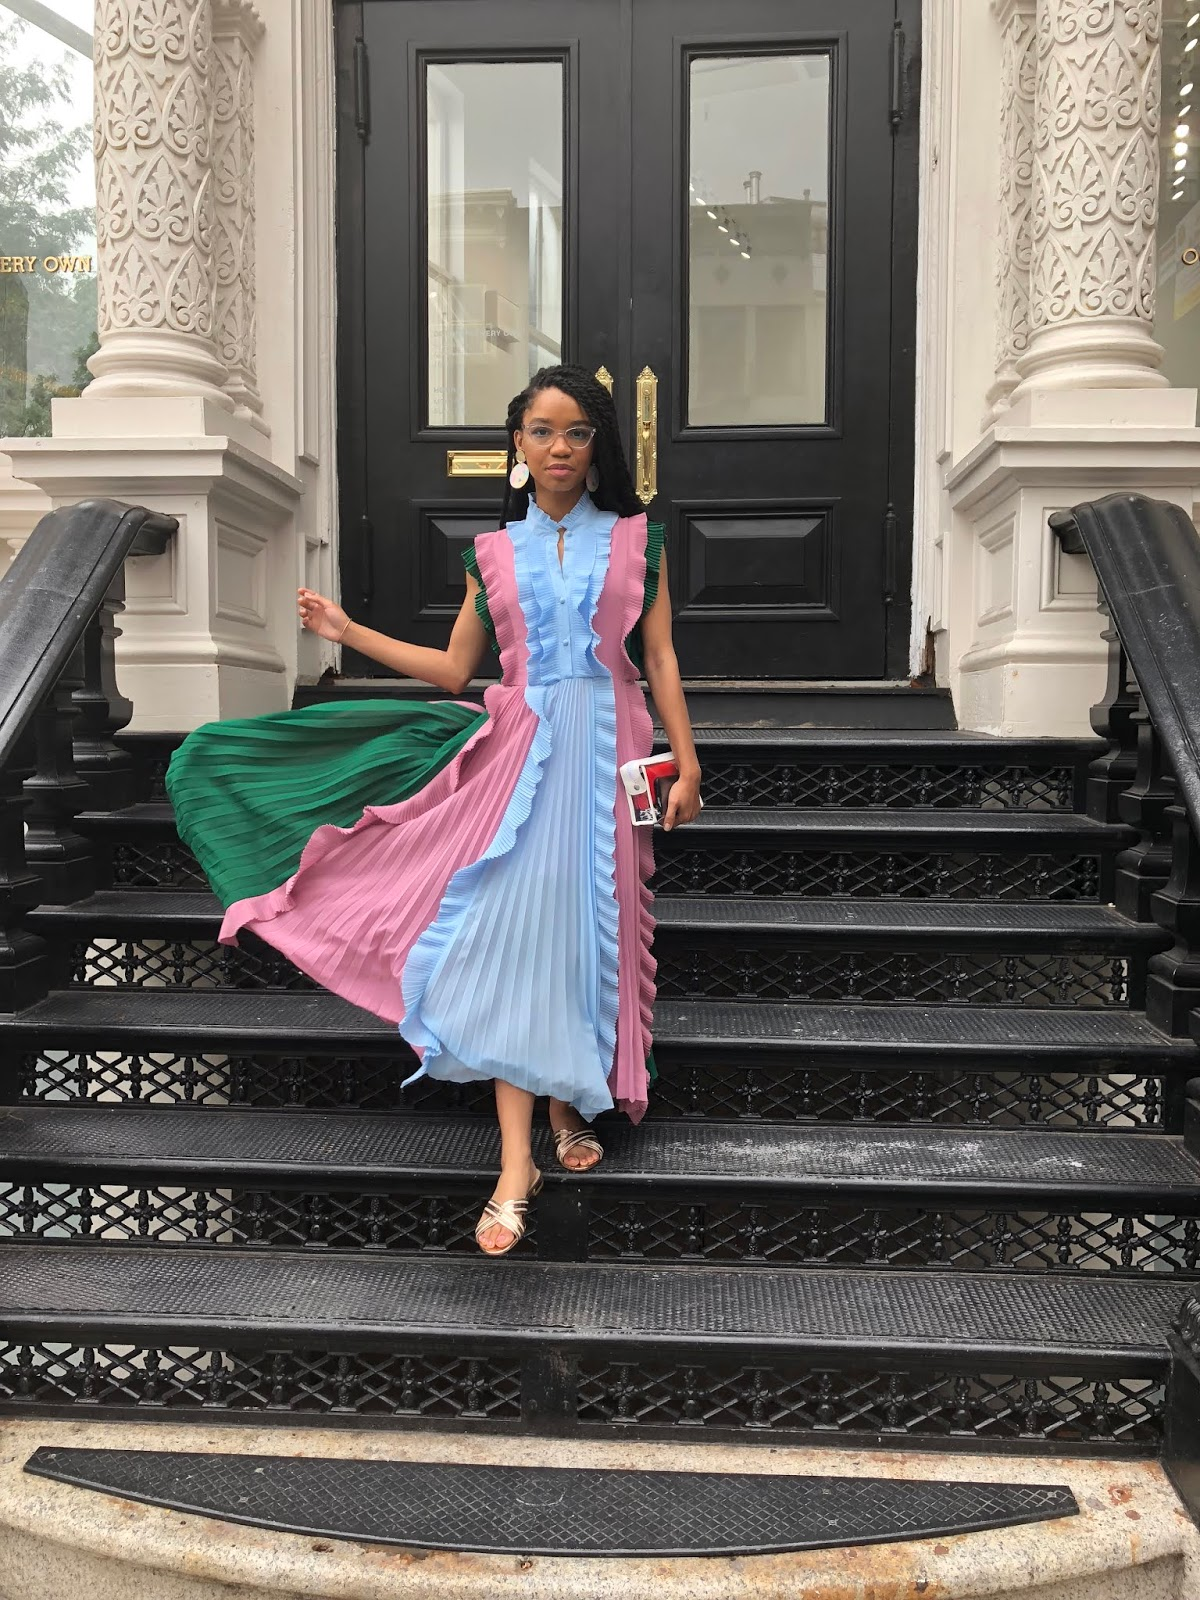 The Strong Suit, NYFW Outfit, New York Fashion Week Street Style, Spring/Summer NYFW 2020, Ruffles, Mutli-colored Dress, Midi Dress